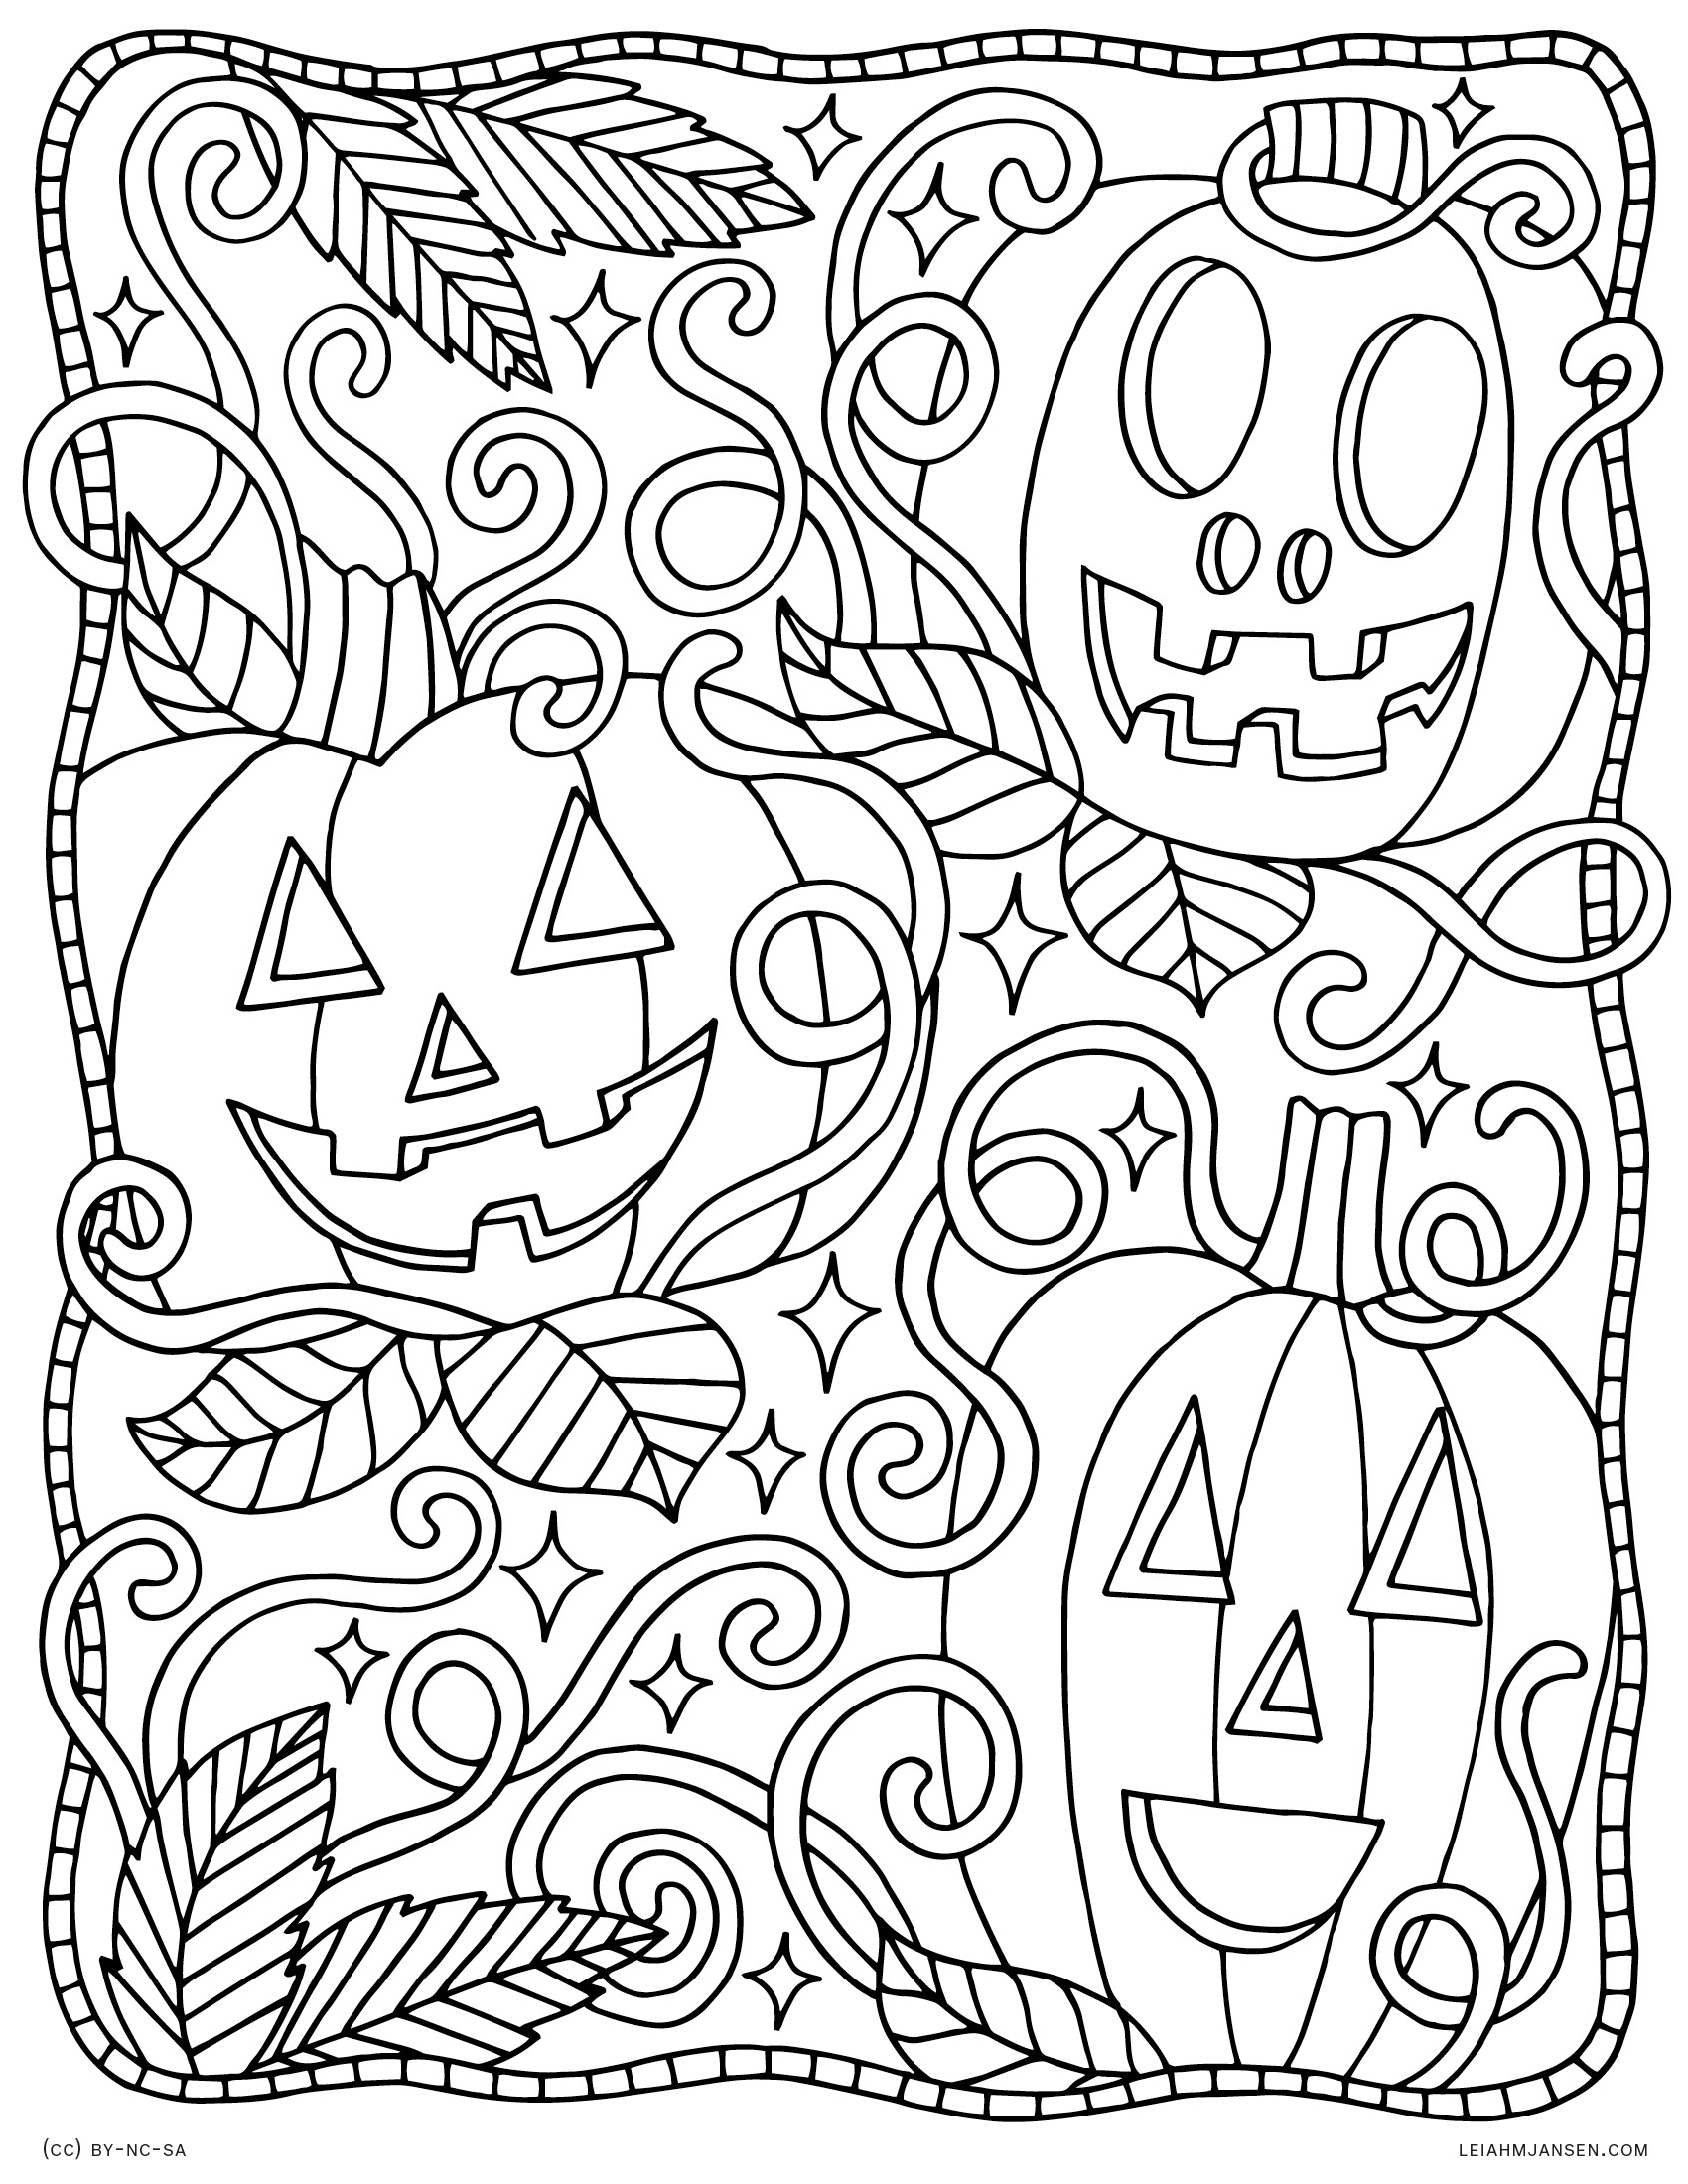 Pumpkin Patch Jack-o-Lanterns & Vines - Happy Halloween - Free Printable Coloring Page for Adults and Kids, by leiahmjansen.com